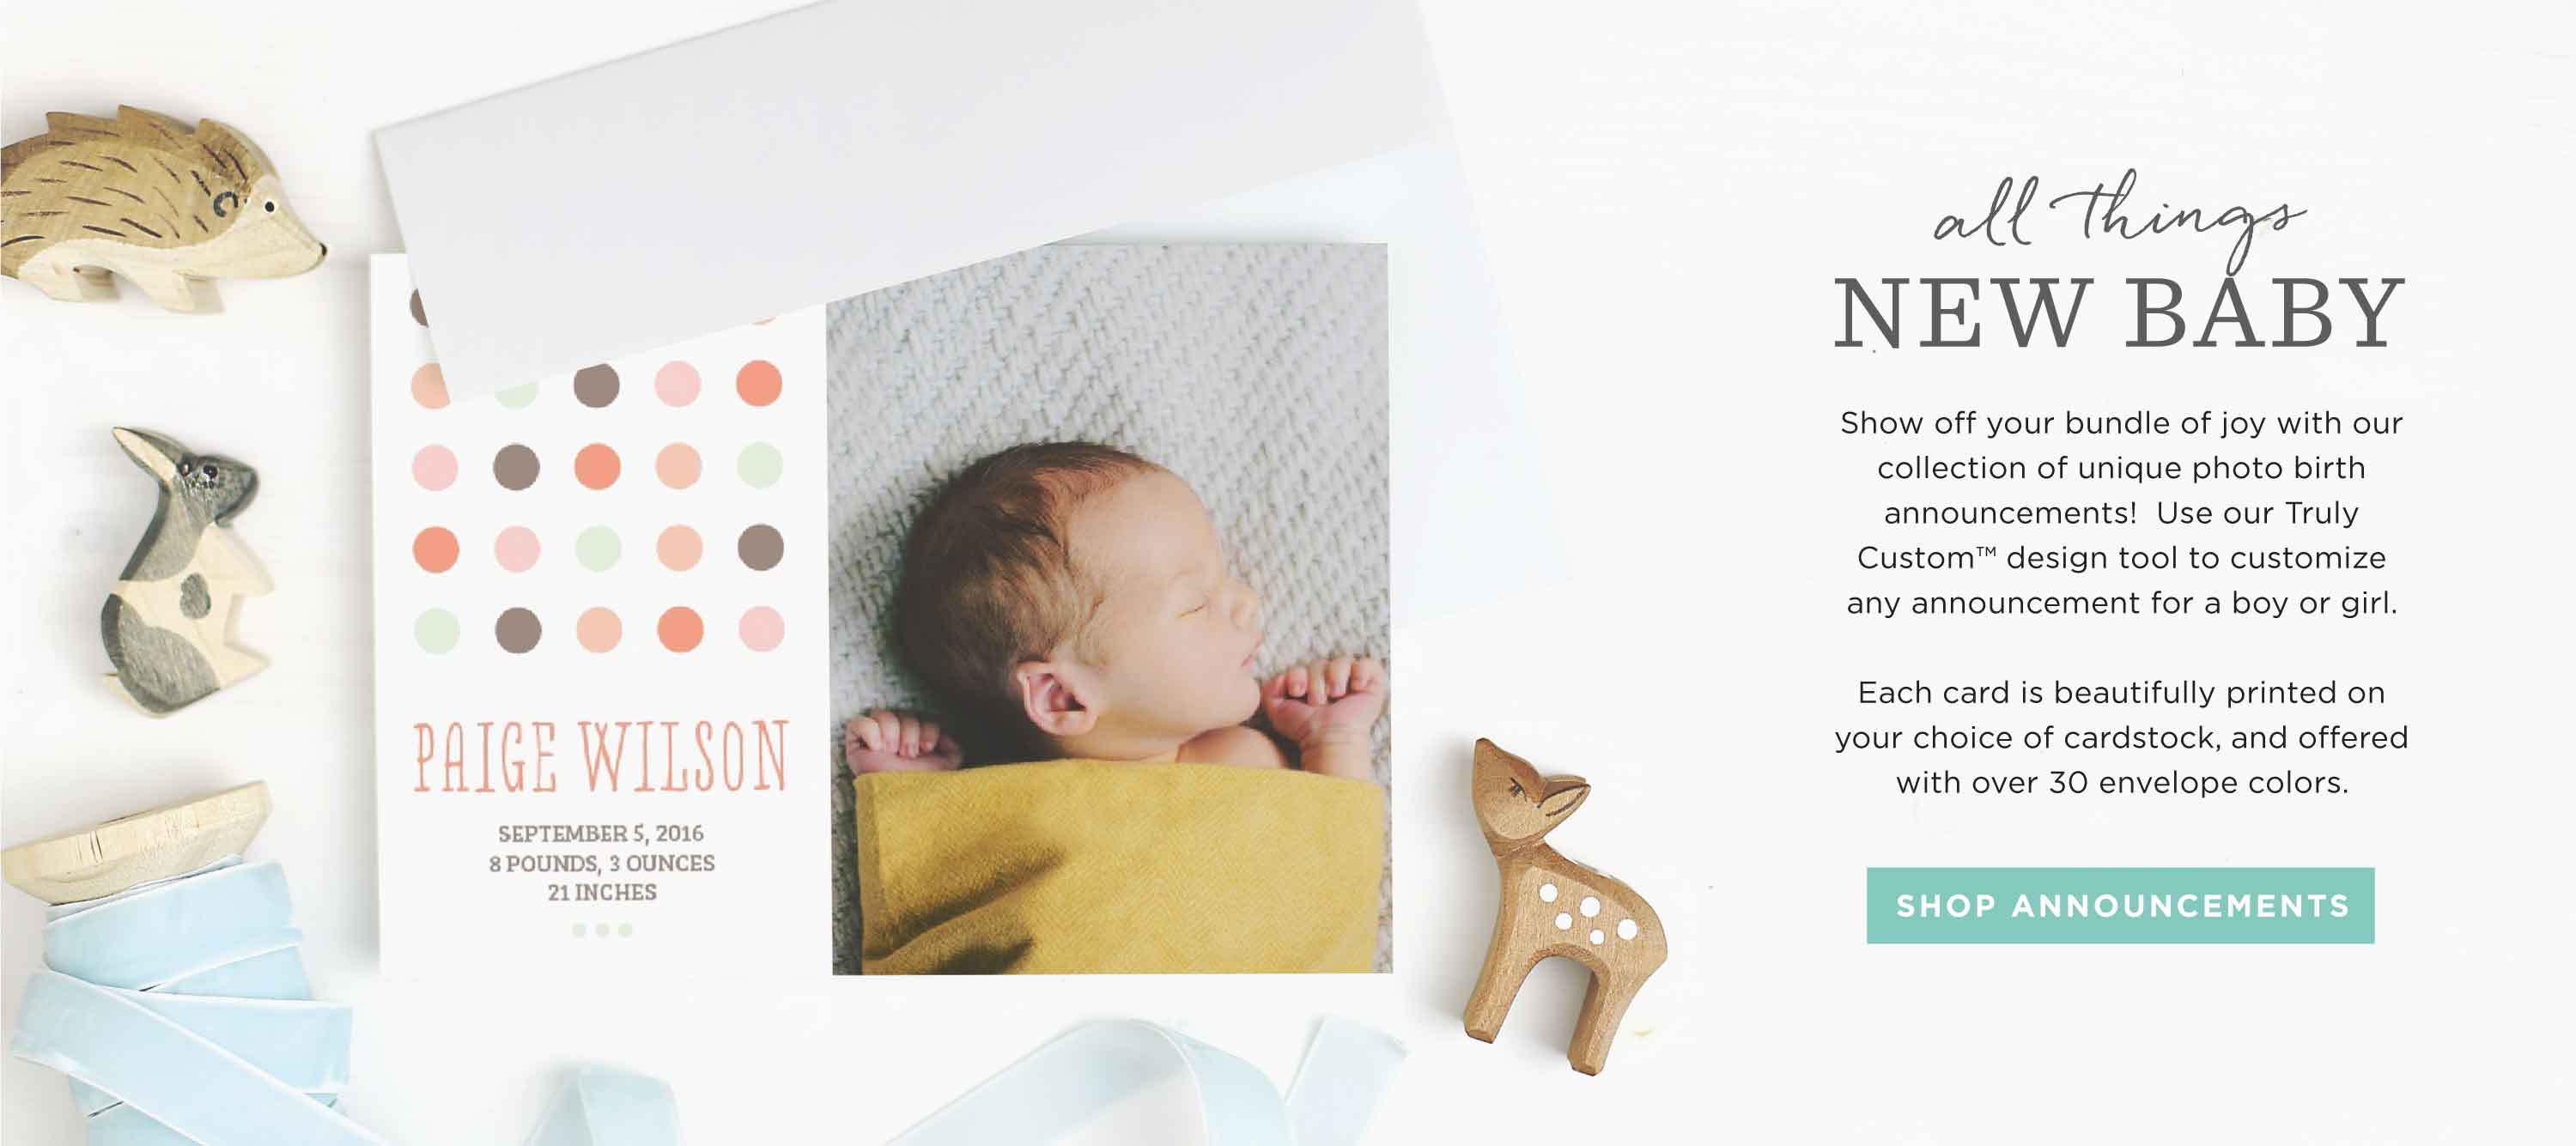 Invitations Announcements and Photo Cards – Create Your Own Baby Announcement